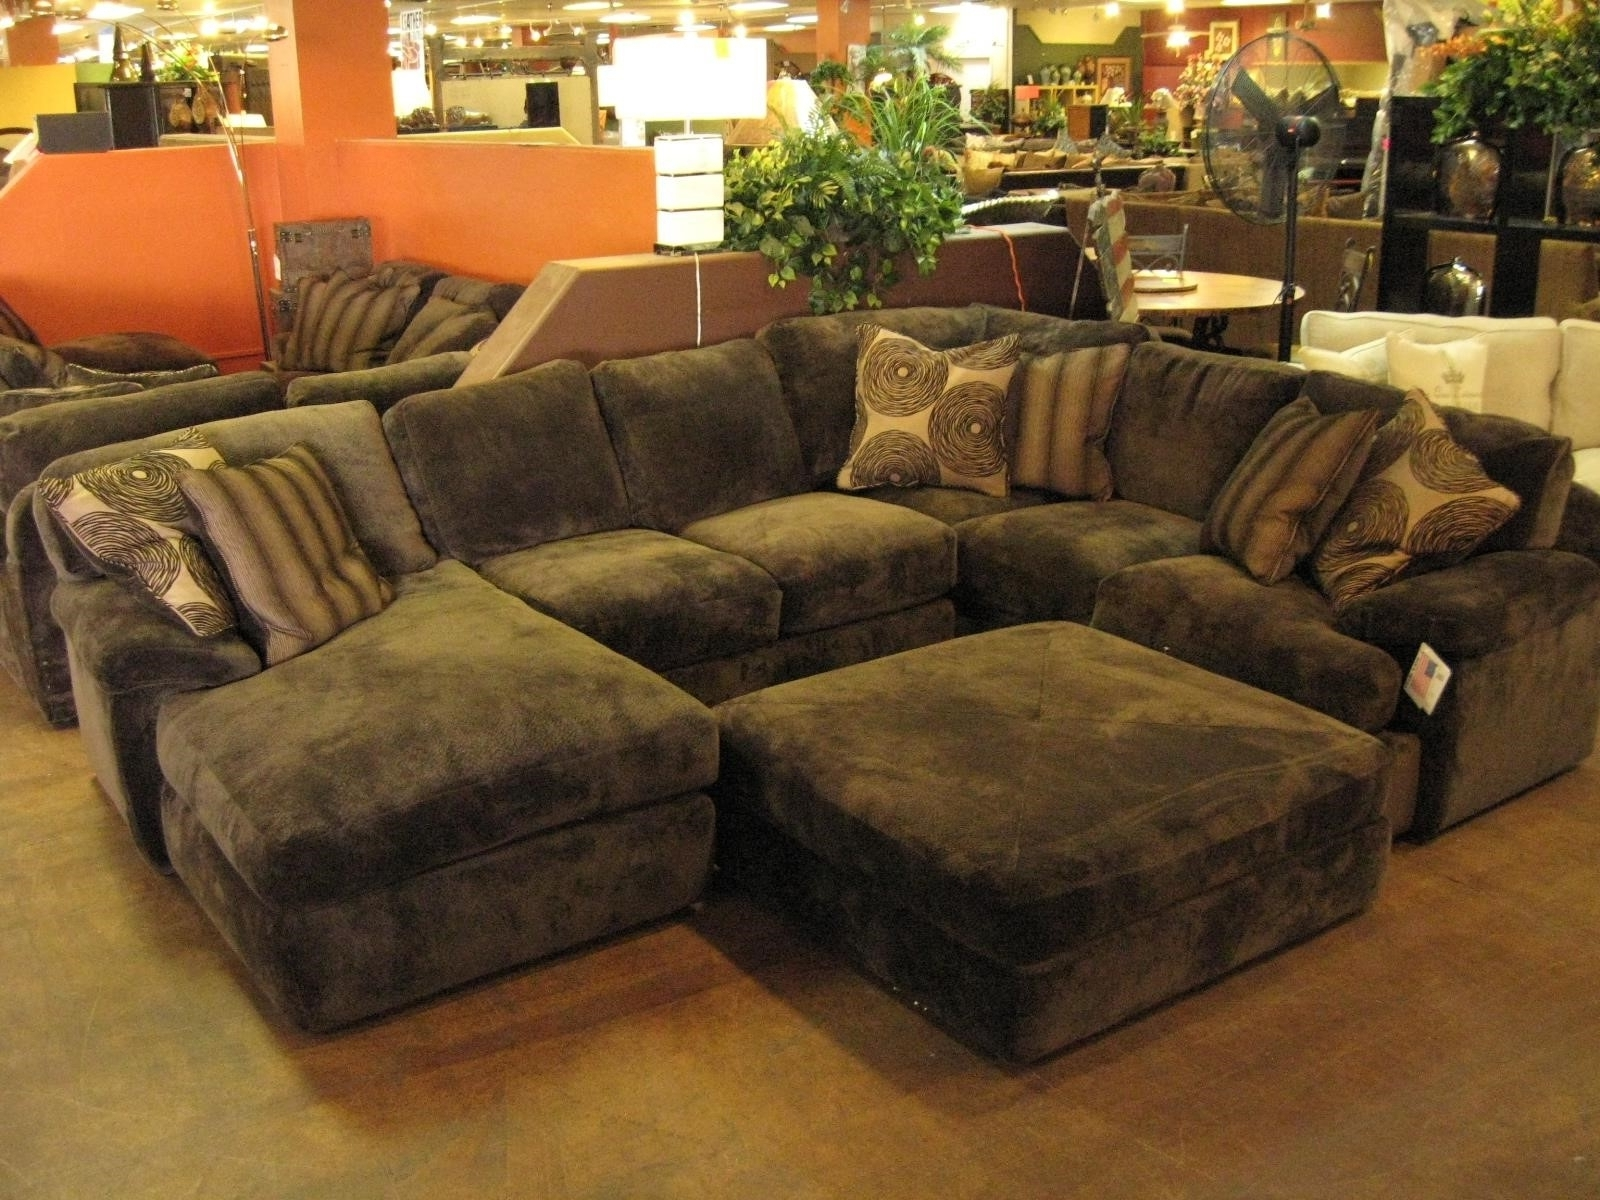 Trendy Oversized Sofa Chairs Inside Oversized Leather Sectional Sofa Distressed Chair Ashley Furniture (View 4 of 20)